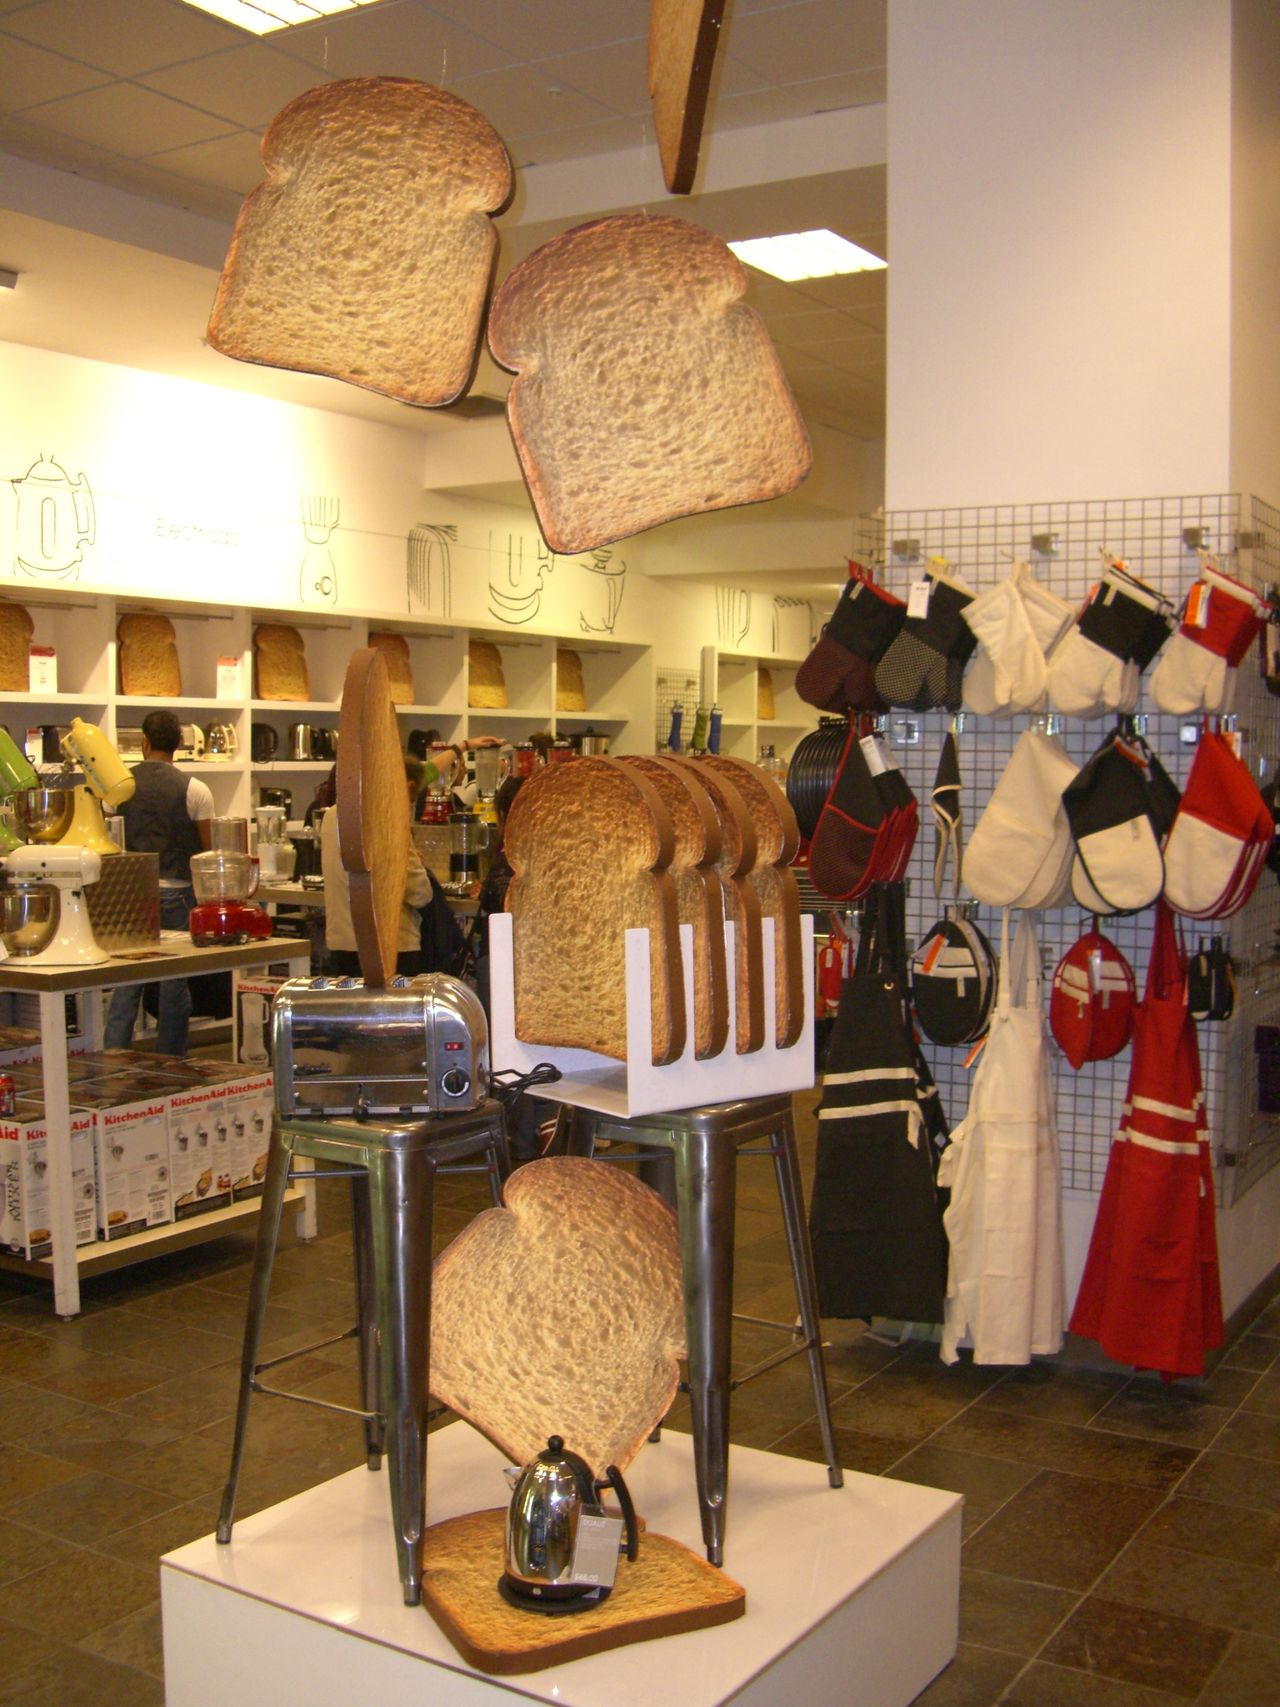 Toaster Display, Selfridges Composition Consumerism Display Famous Place Flying Things For Sale Full Frame GB Hanging Illuminated Indoor Photography London Luxury No People Oxford Street  Retail  Selfridges Store Toast Toasted Bread Toaster Tourist Attraction  Tourist Destination Uk Unusual Display